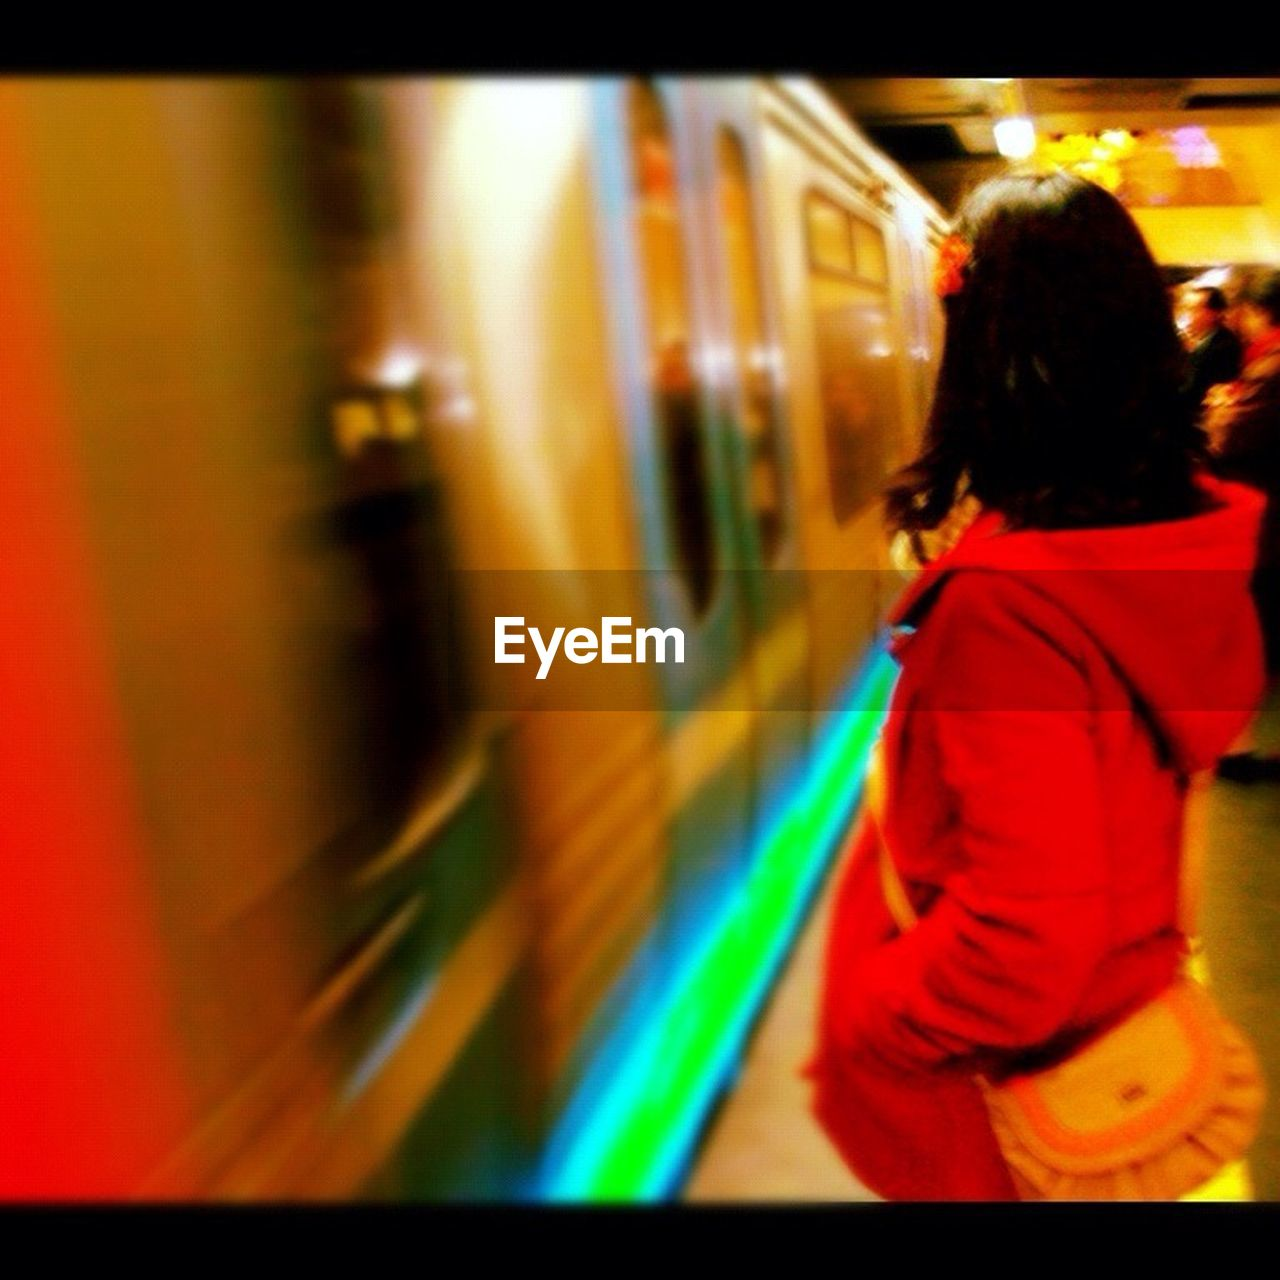 train - vehicle, transportation, public transportation, passenger train, subway train, rear view, blurred motion, rail transportation, subway station, casual clothing, one person, journey, standing, real people, illuminated, commuter train, women, night, indoors, people, adult, adults only